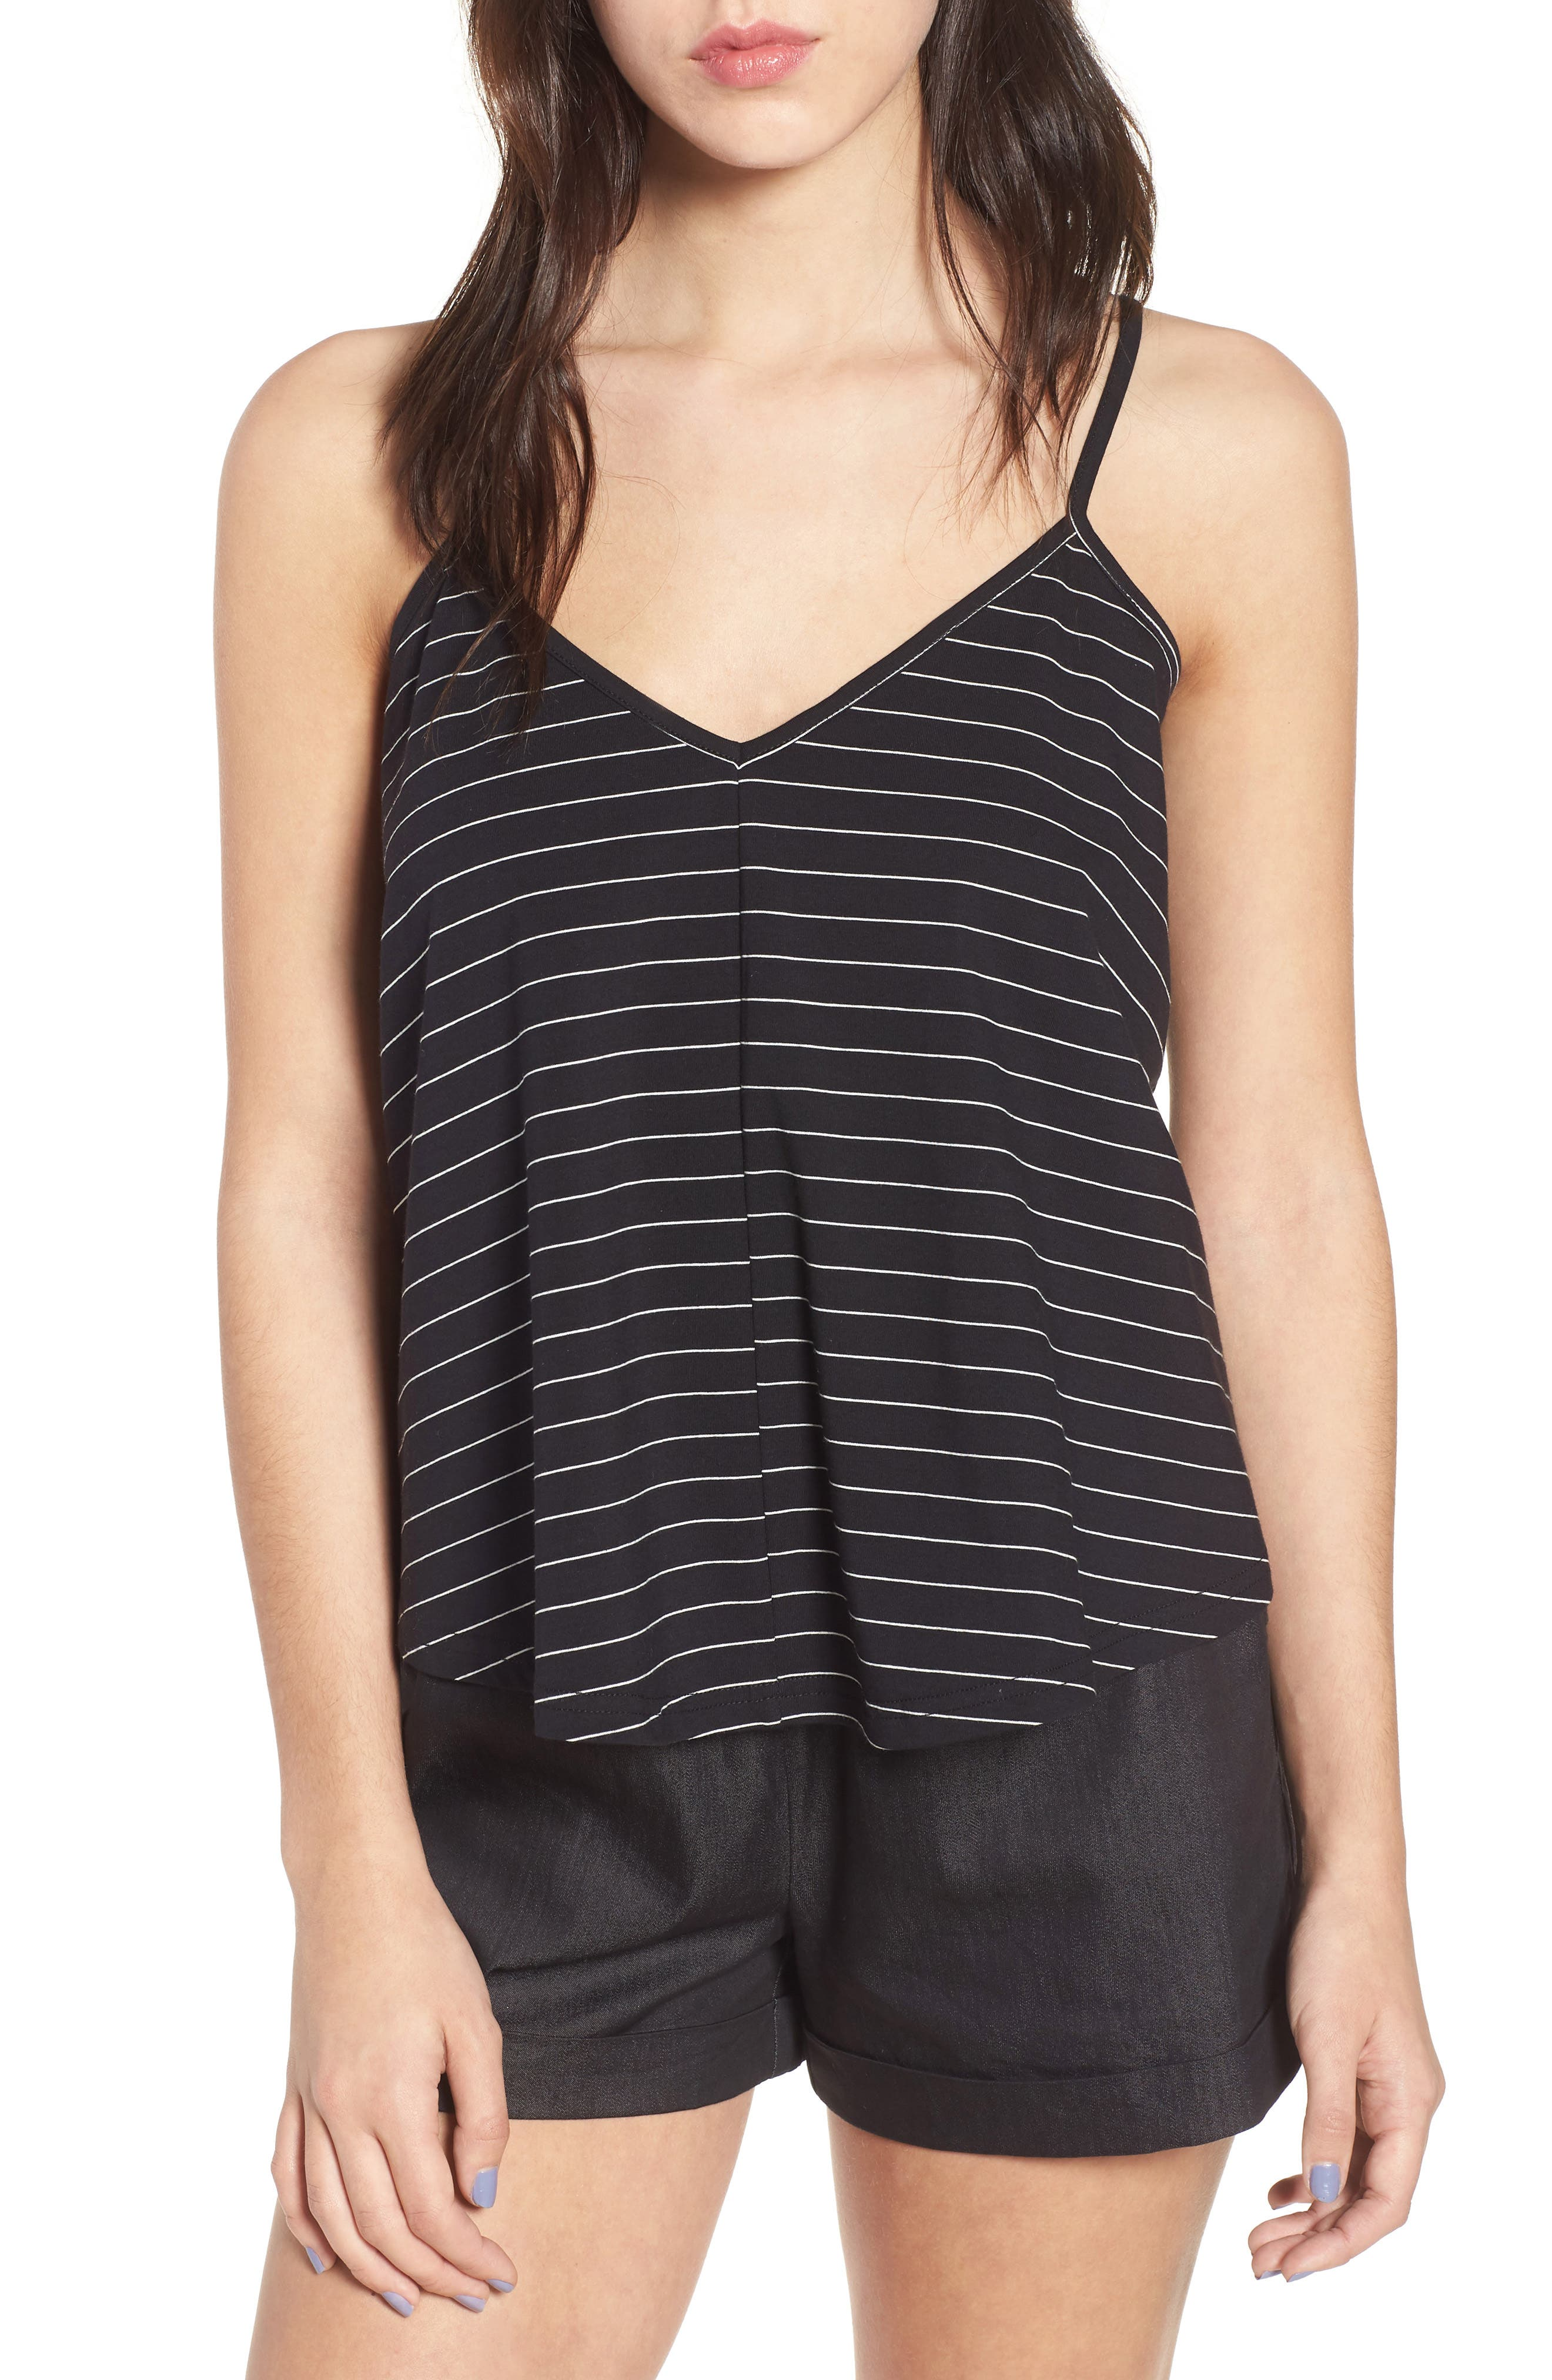 Harlow Stripe Camisole Top,                             Main thumbnail 1, color,                             001